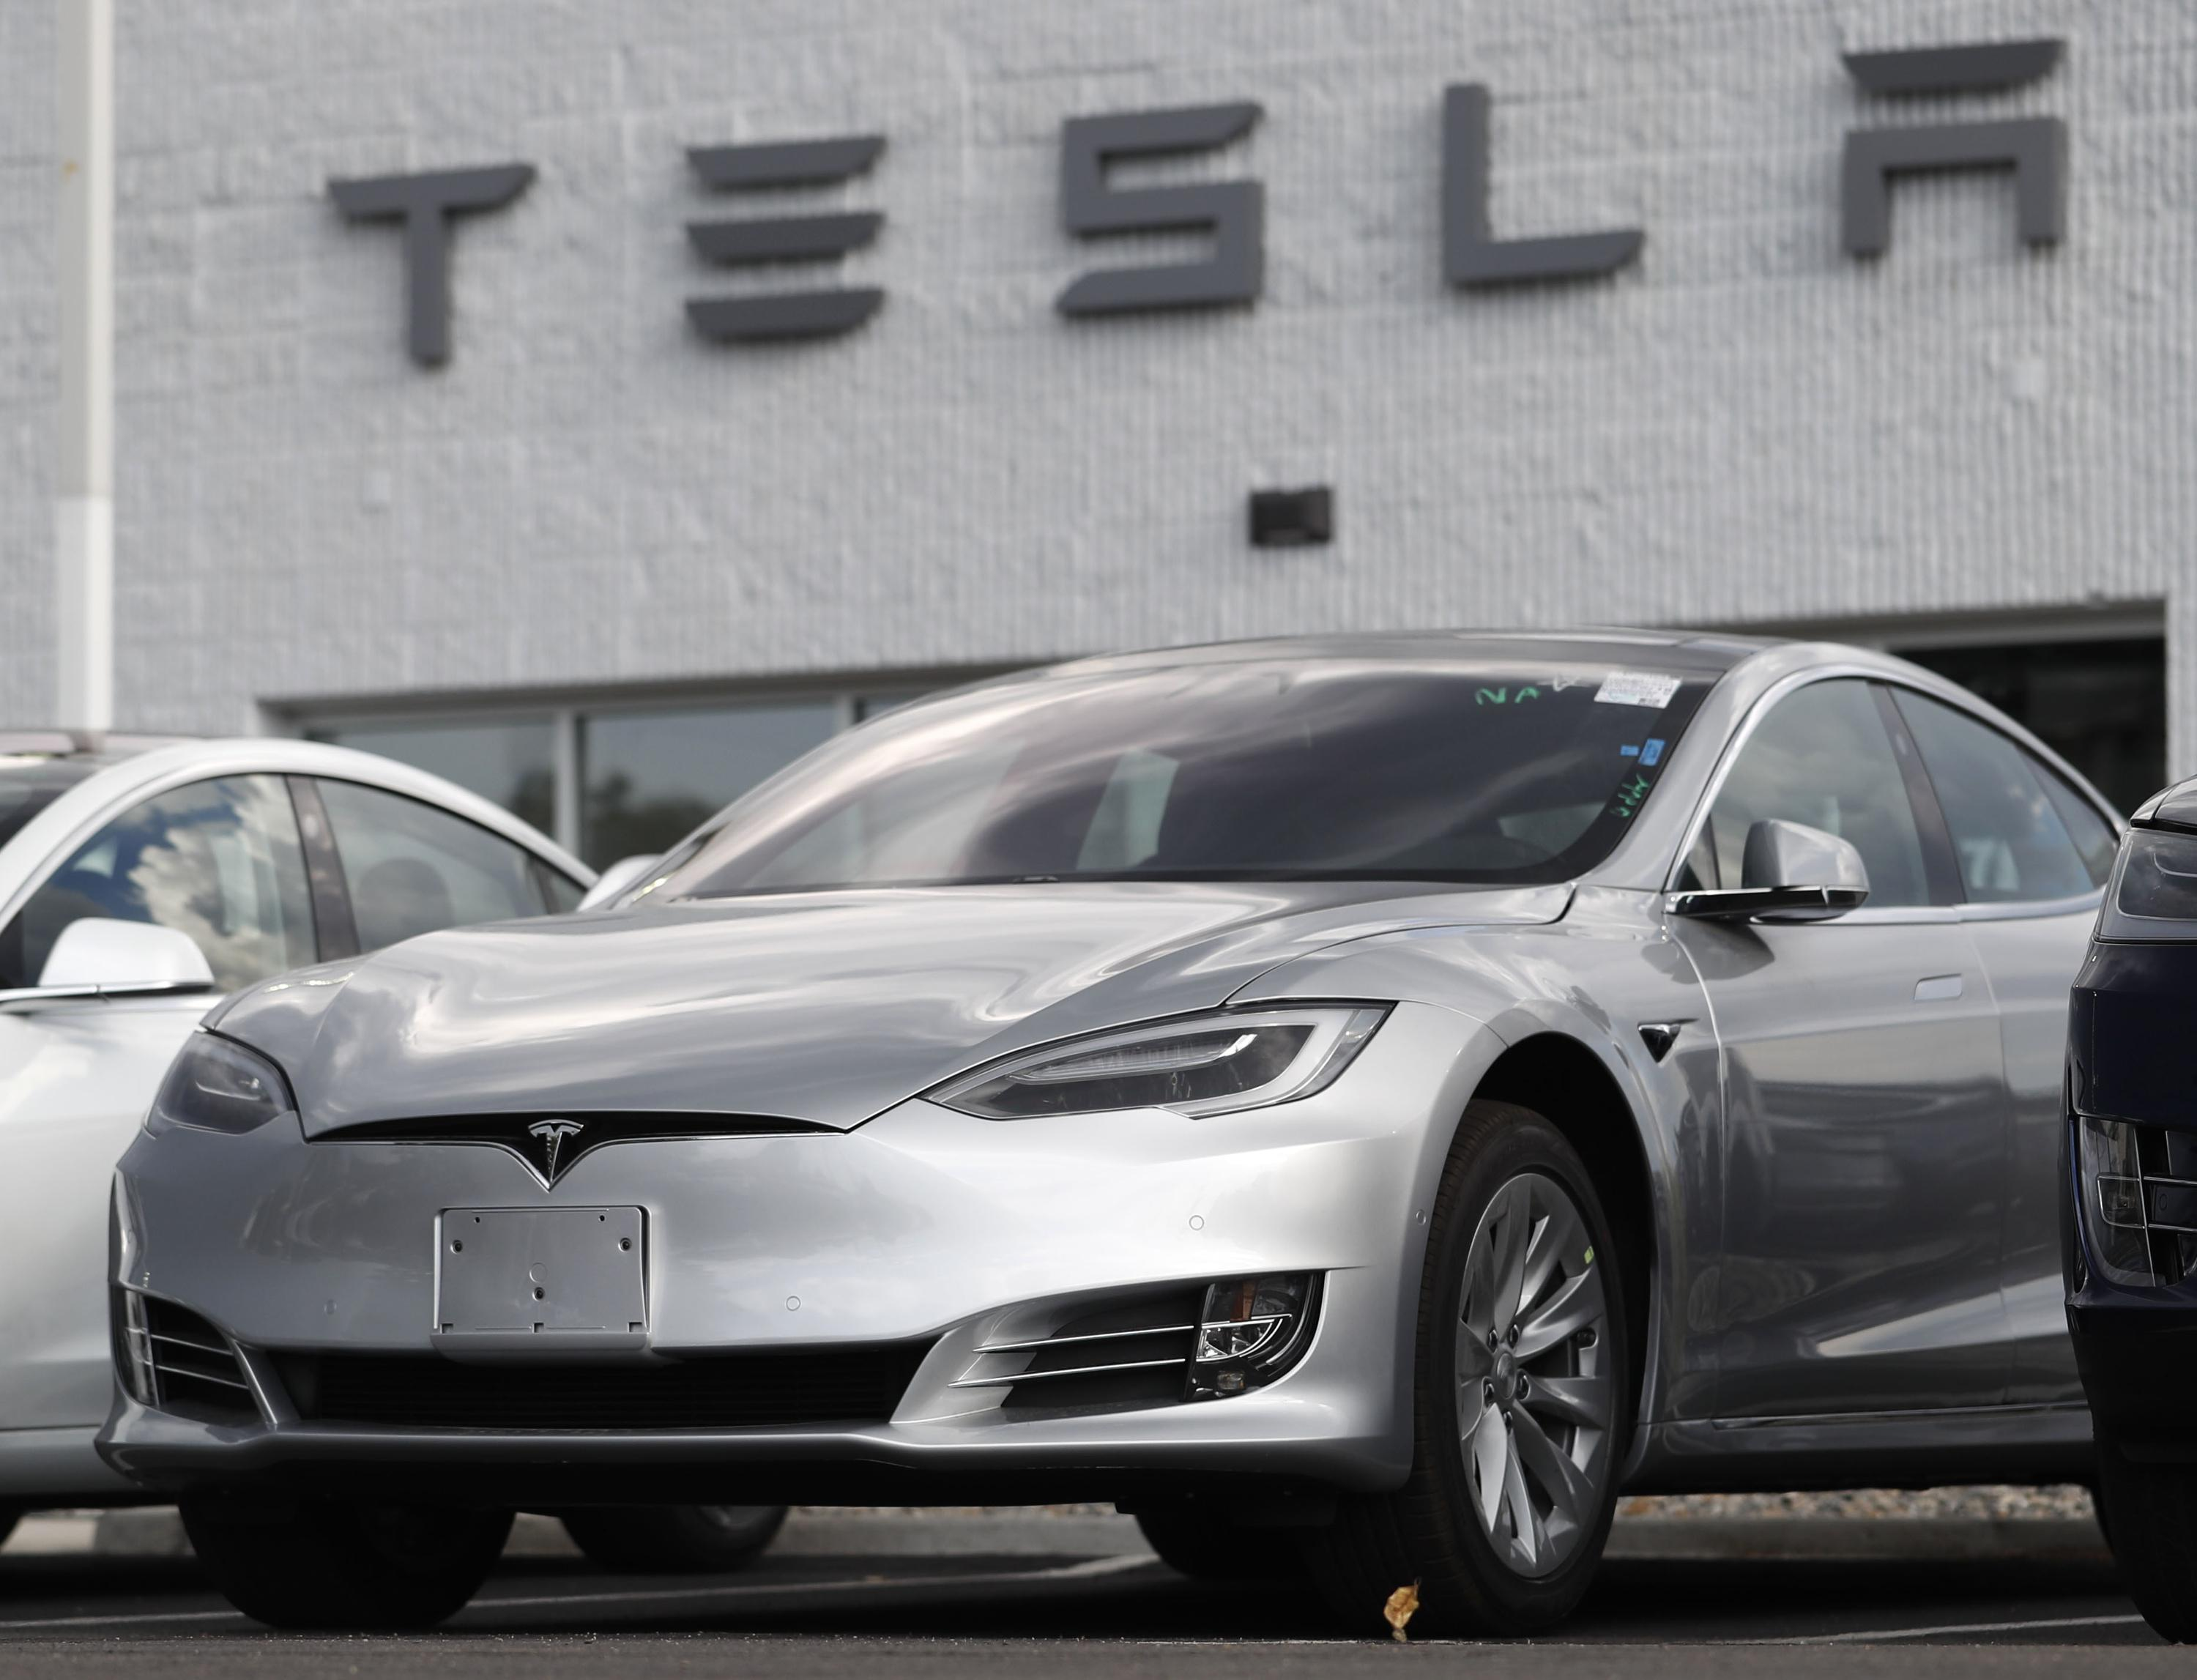 DETROIT (AP) — The U.S. government has opened a formal investigation into Tesla's Autopilot partially automated driving system after a series of c